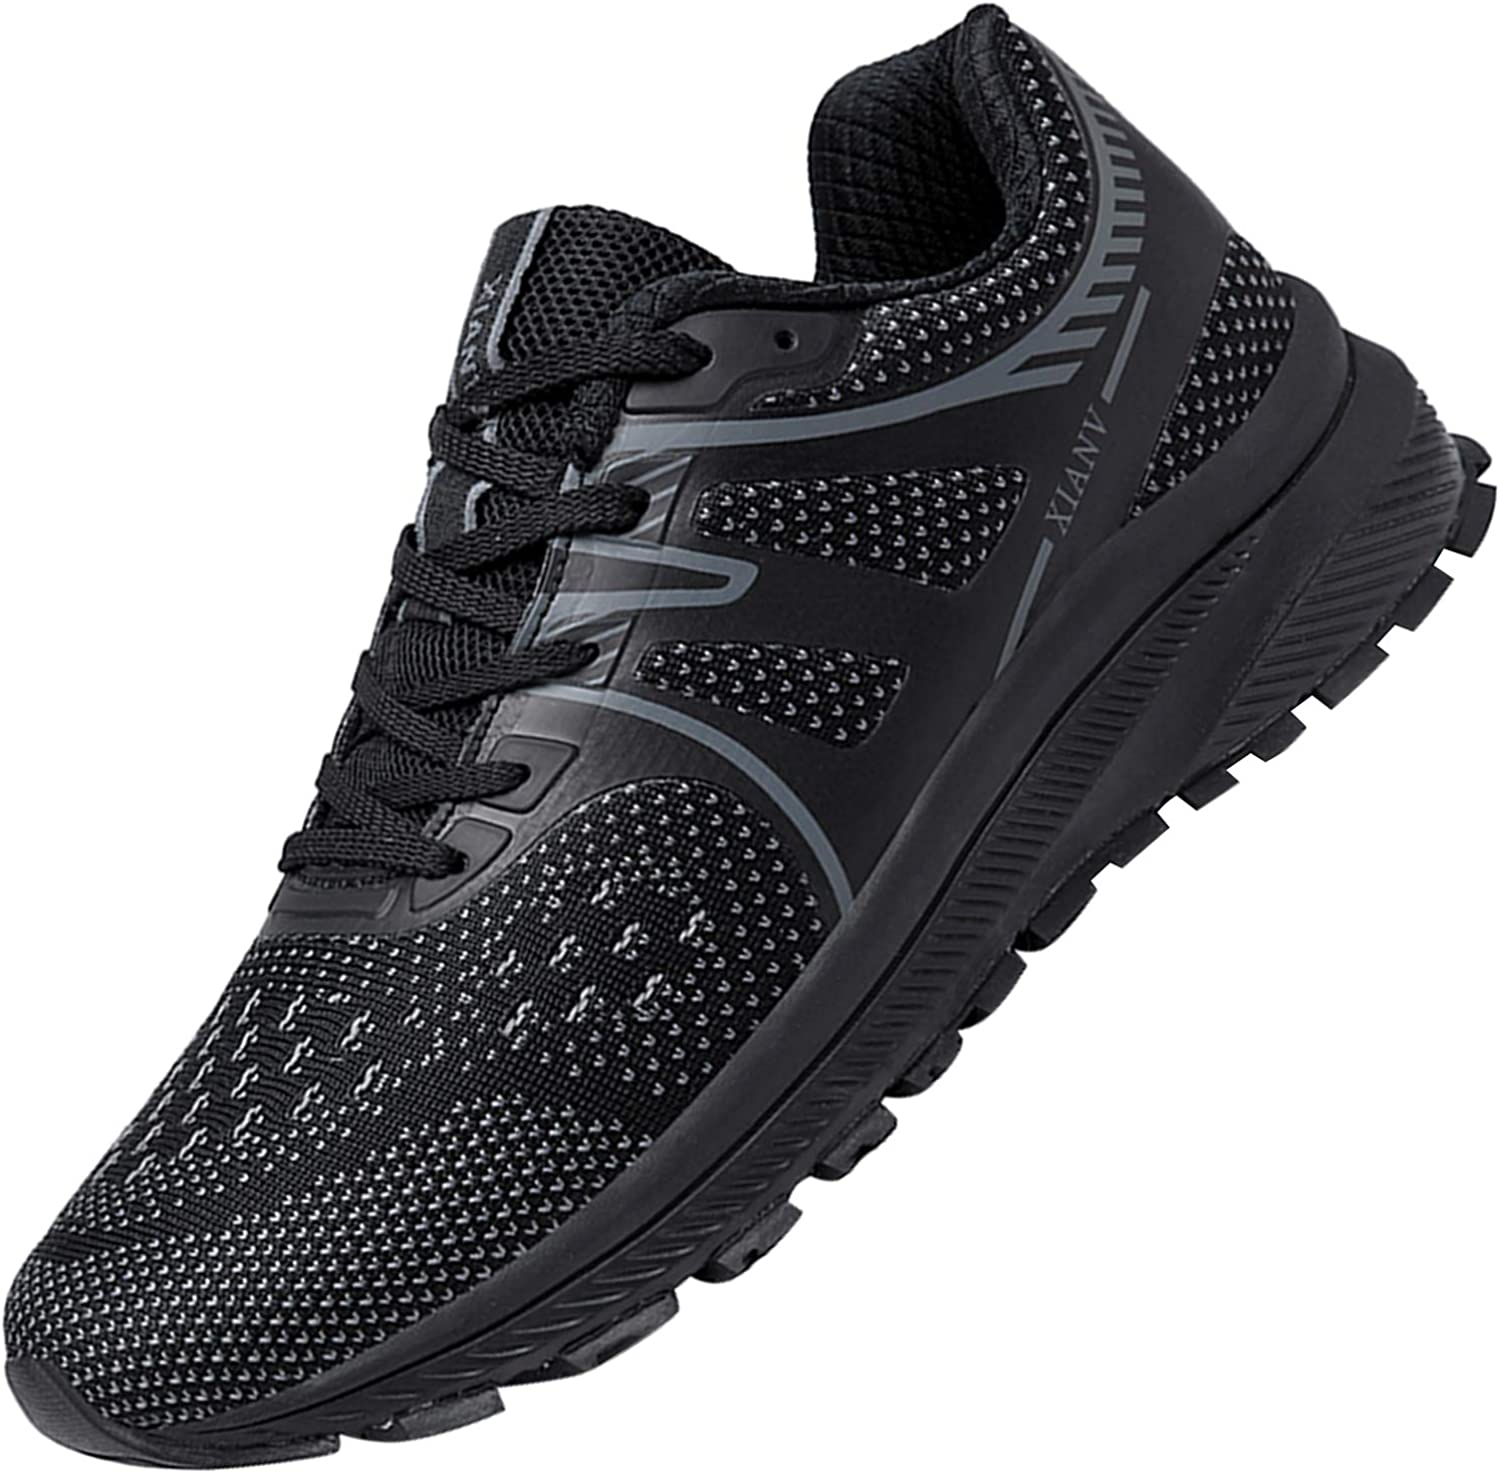 DUORO Walking Shoes for Men Breathable Shoe New Fort Worth Mall arrival Lightweight Running